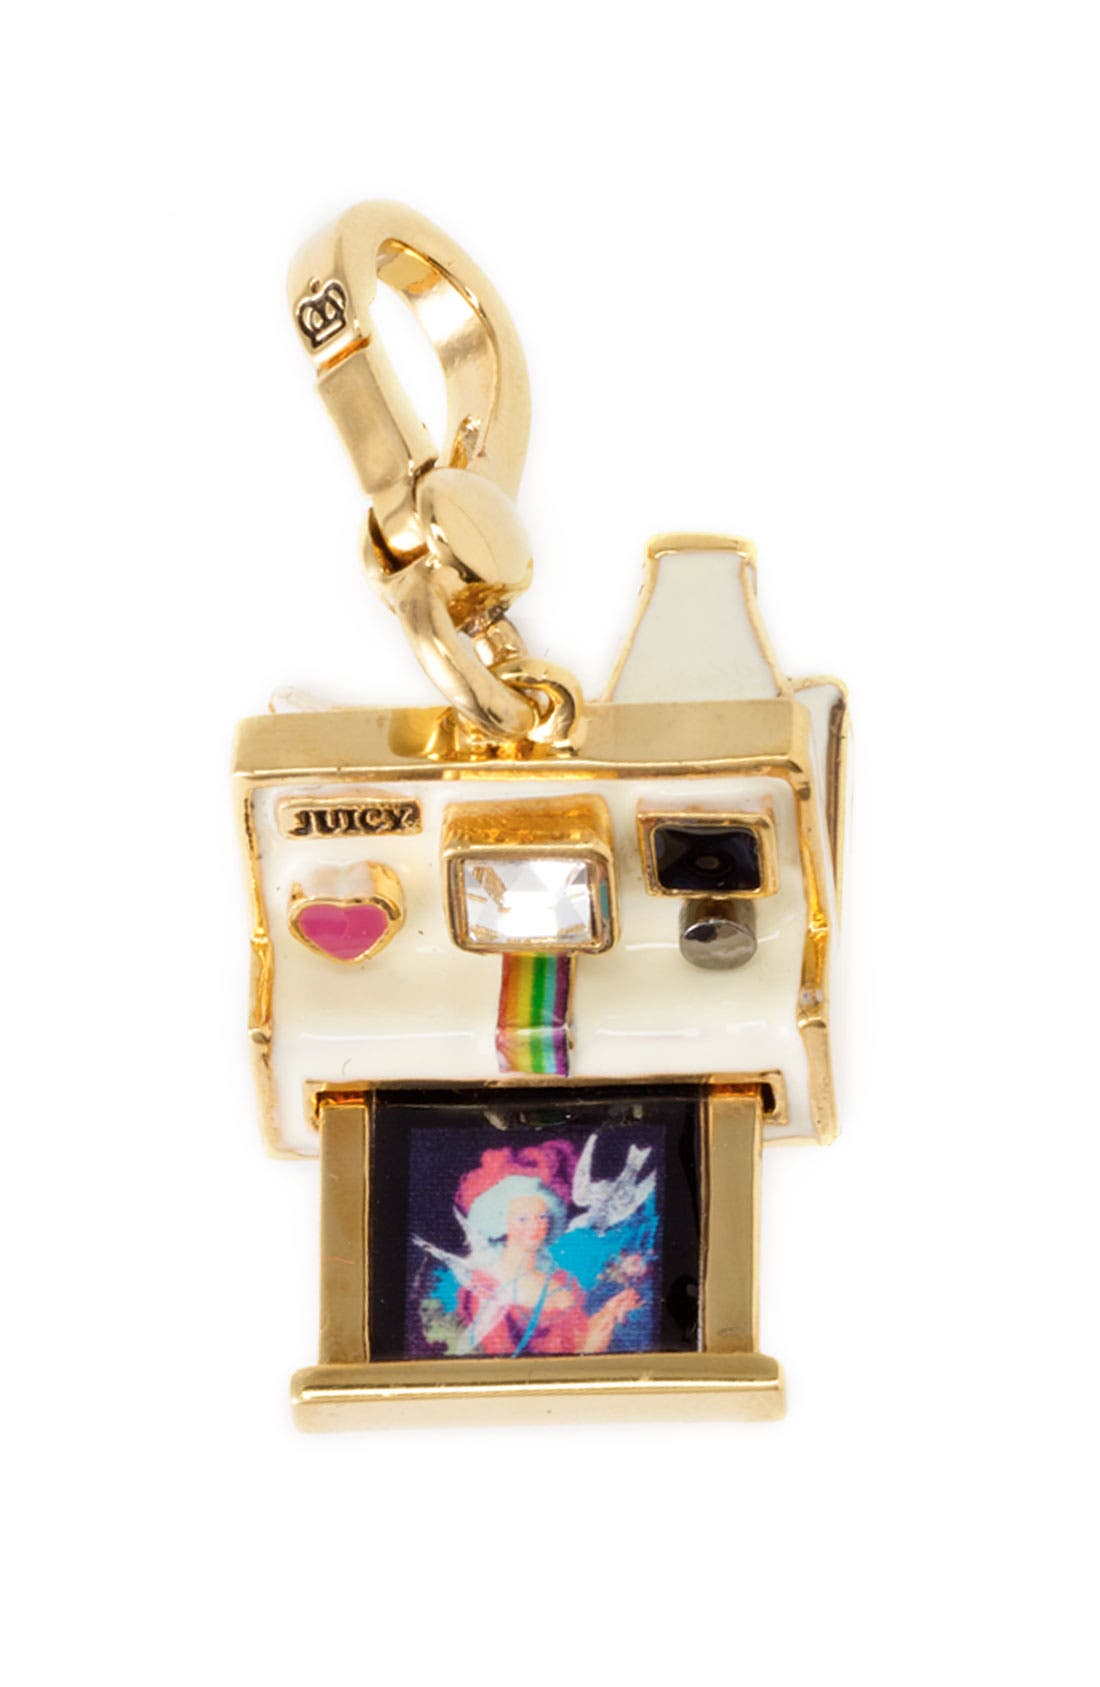 Main Image - Juicy Couture Camera Charm